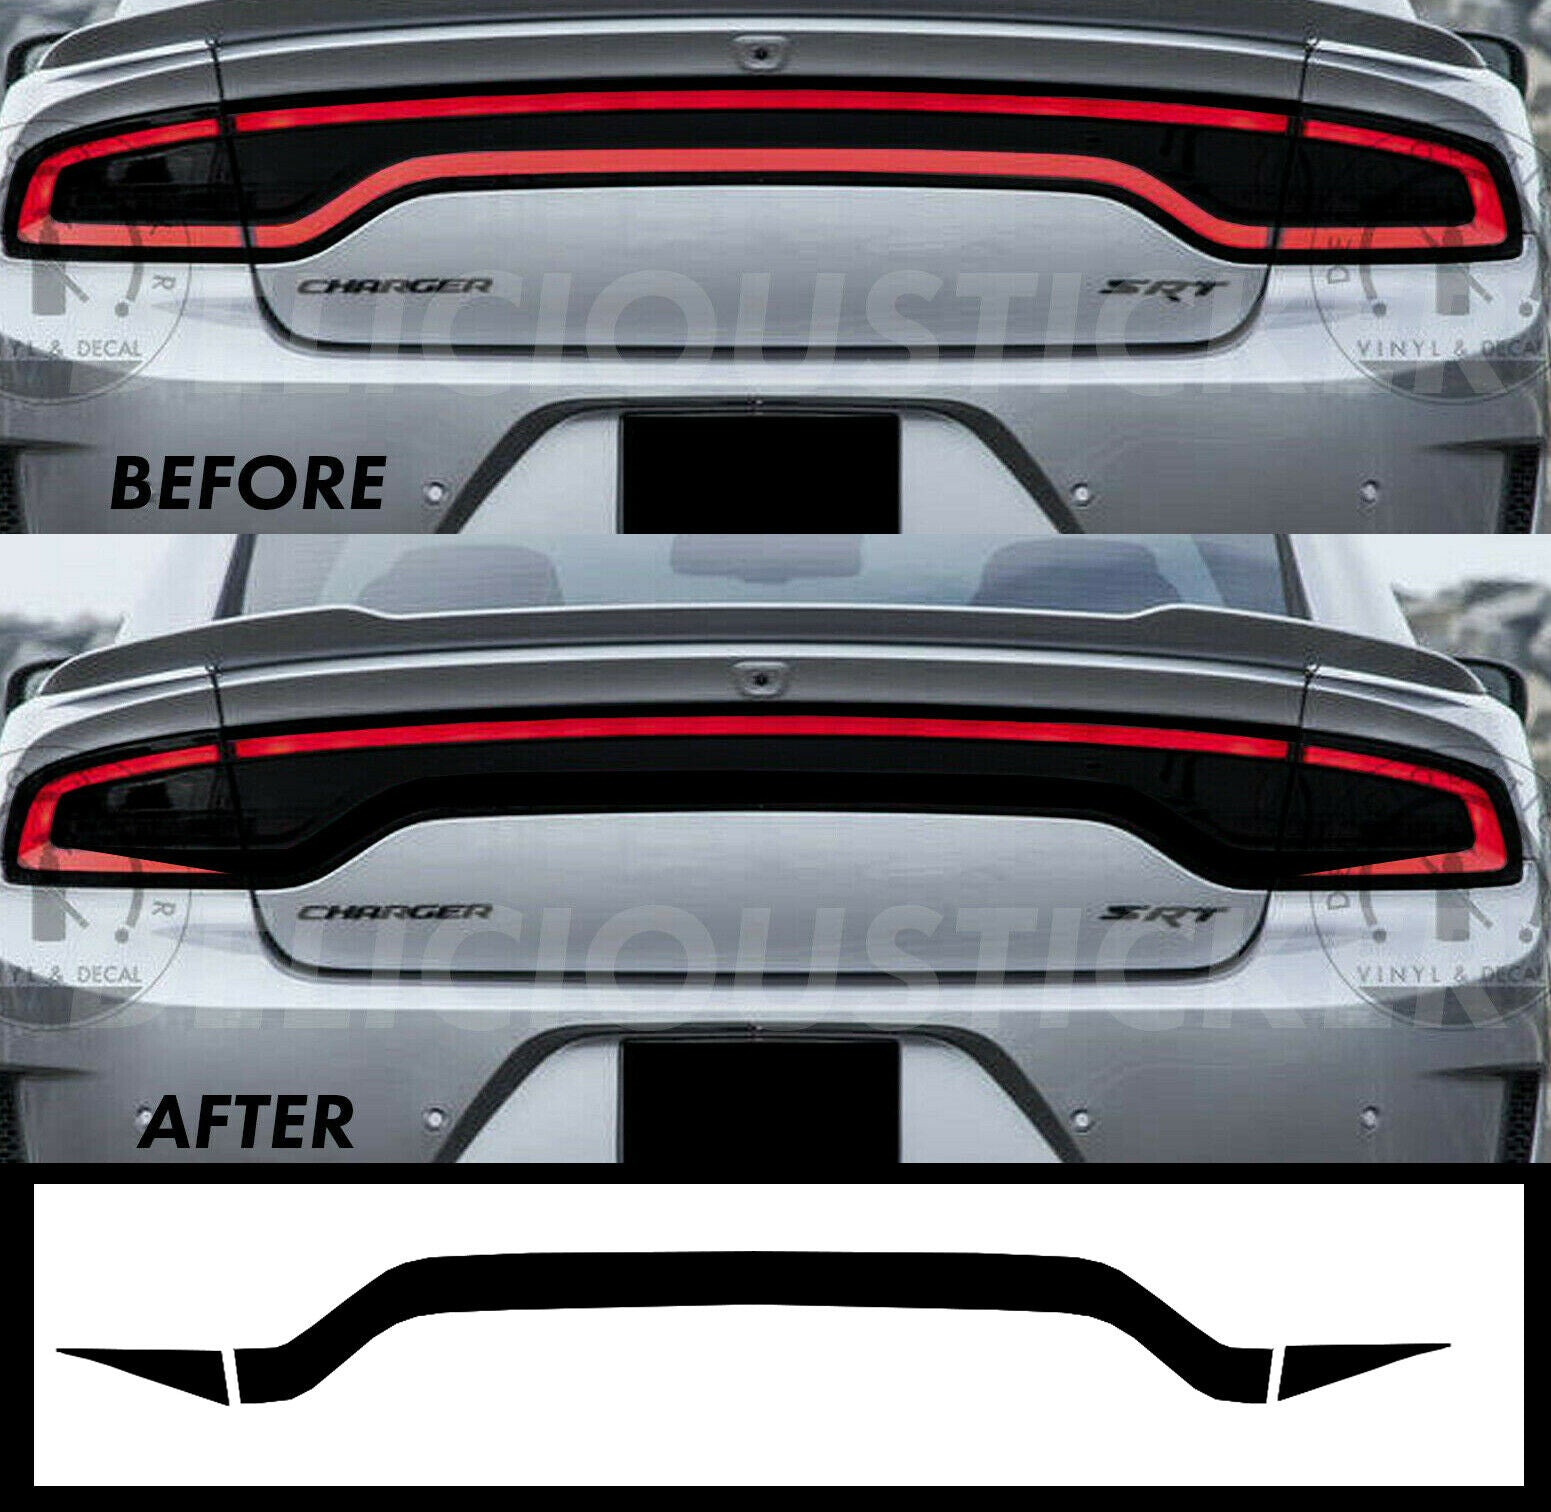 Black RaceTrack Tail Light Decal Overlays STYLE G (Fits For: 2015-2021 Dodge Charger)